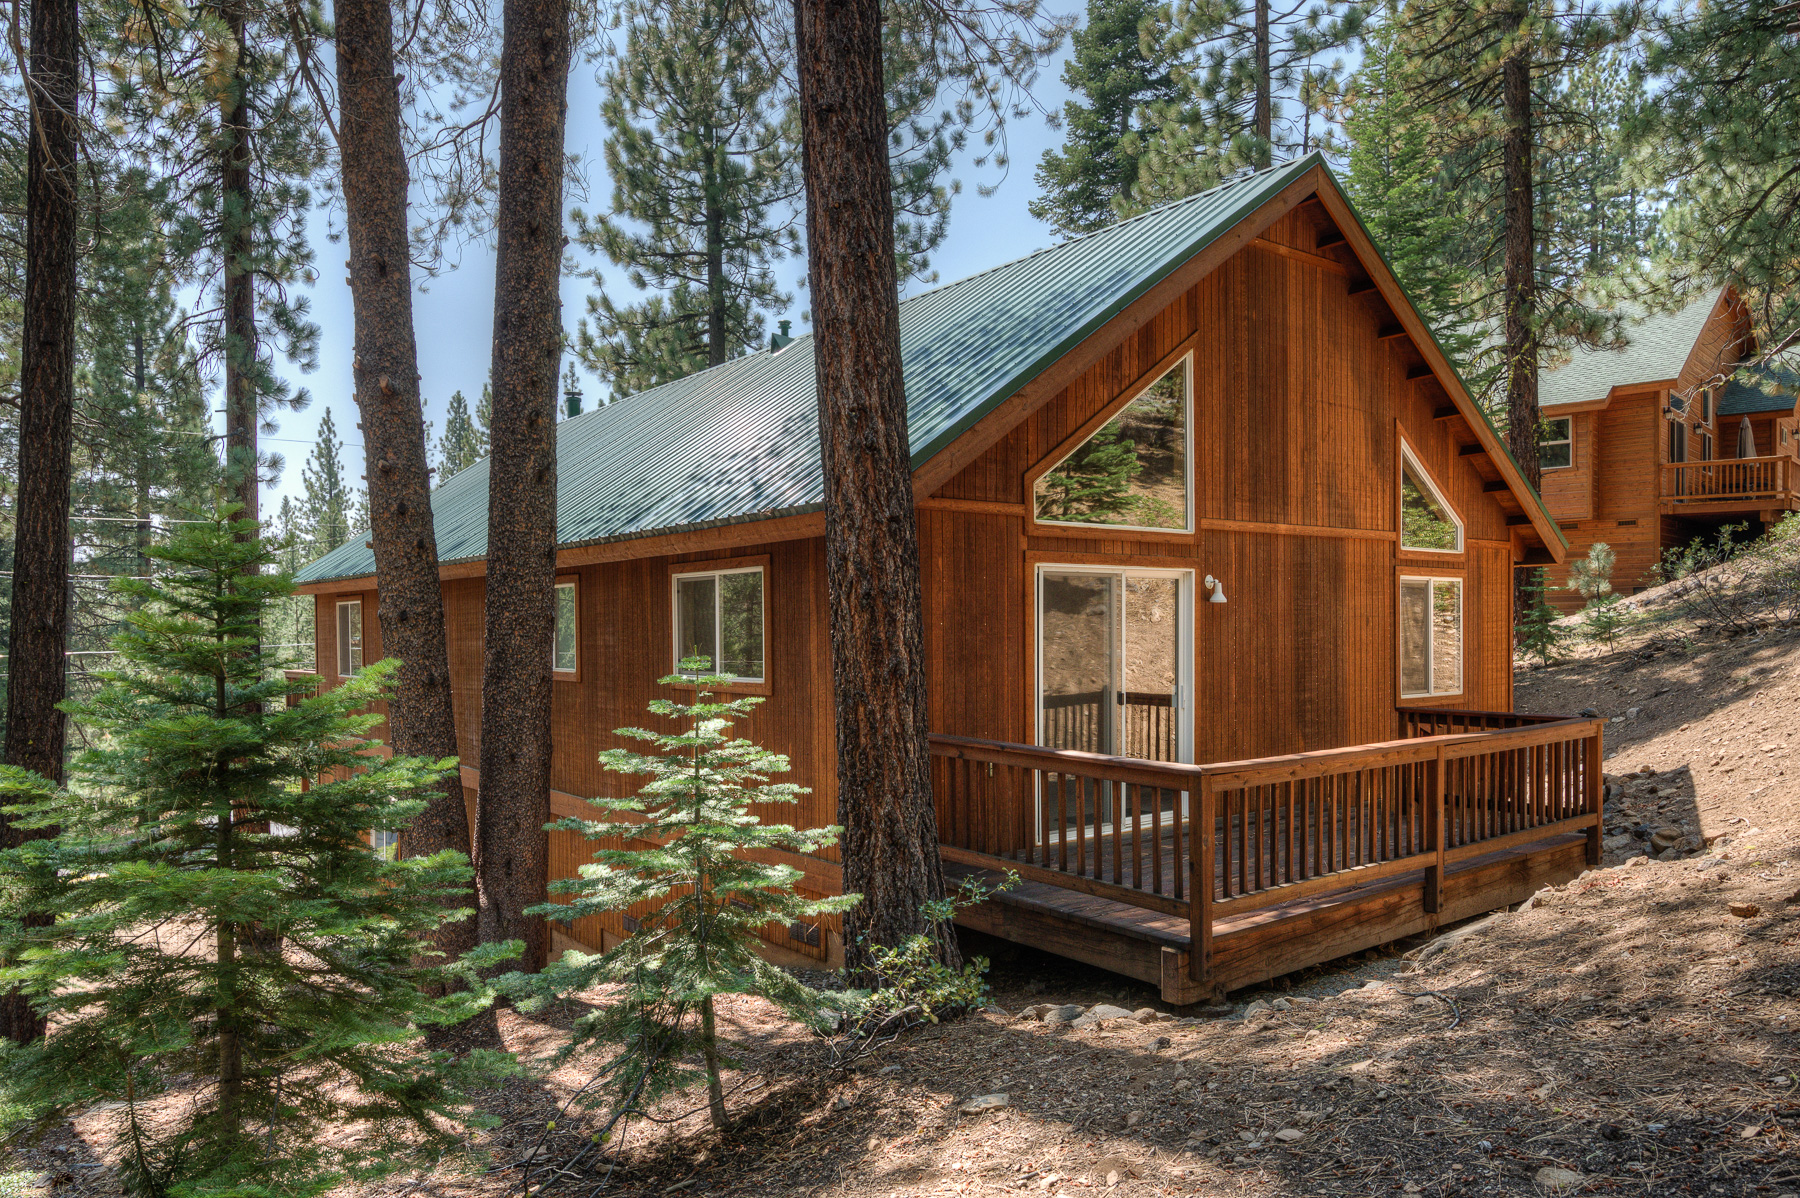 redawning cabin meeks in rental tahoe unforgettable vacation bay cabins property lake